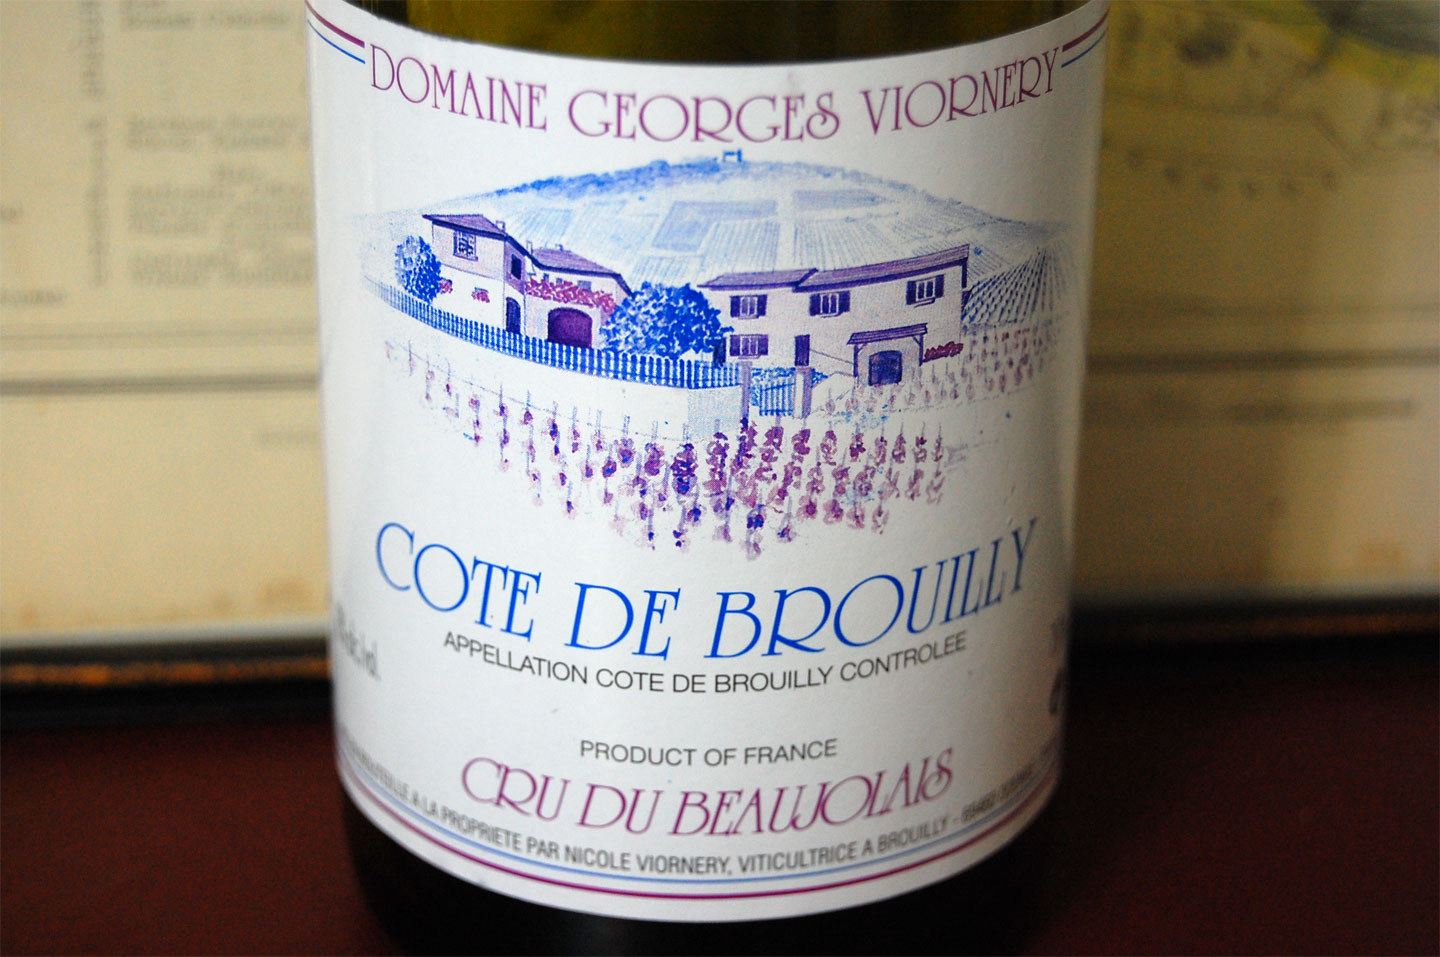 Georges Viornery Cote de Brouilly Cuvee Unique